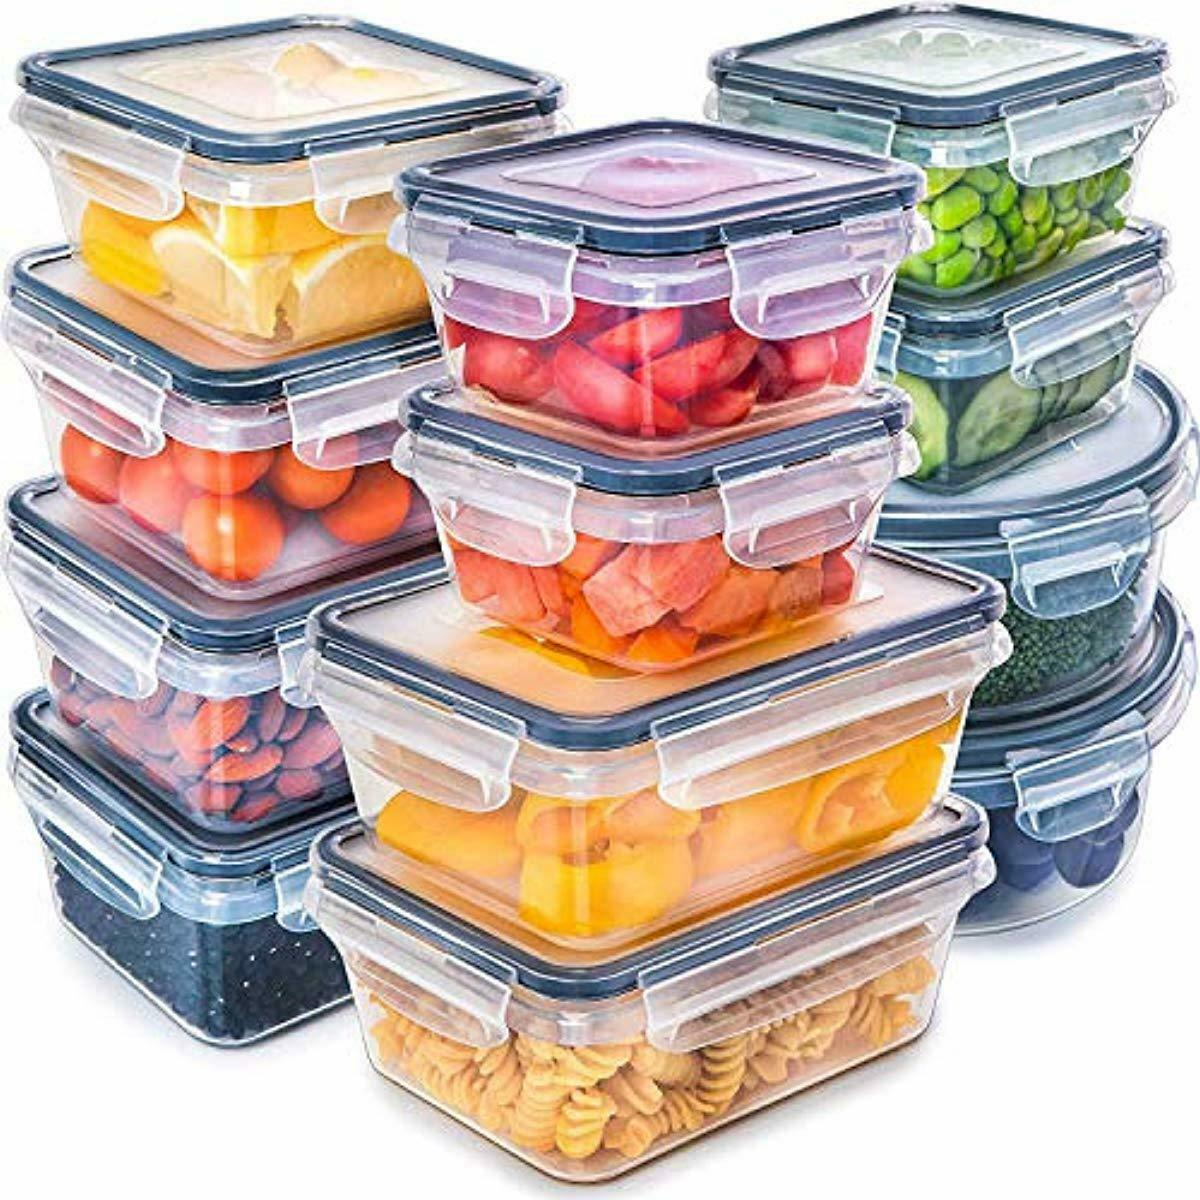 Fullstar (12 Pack) Food Storage Containers with Lids - Black Plastic Food 1